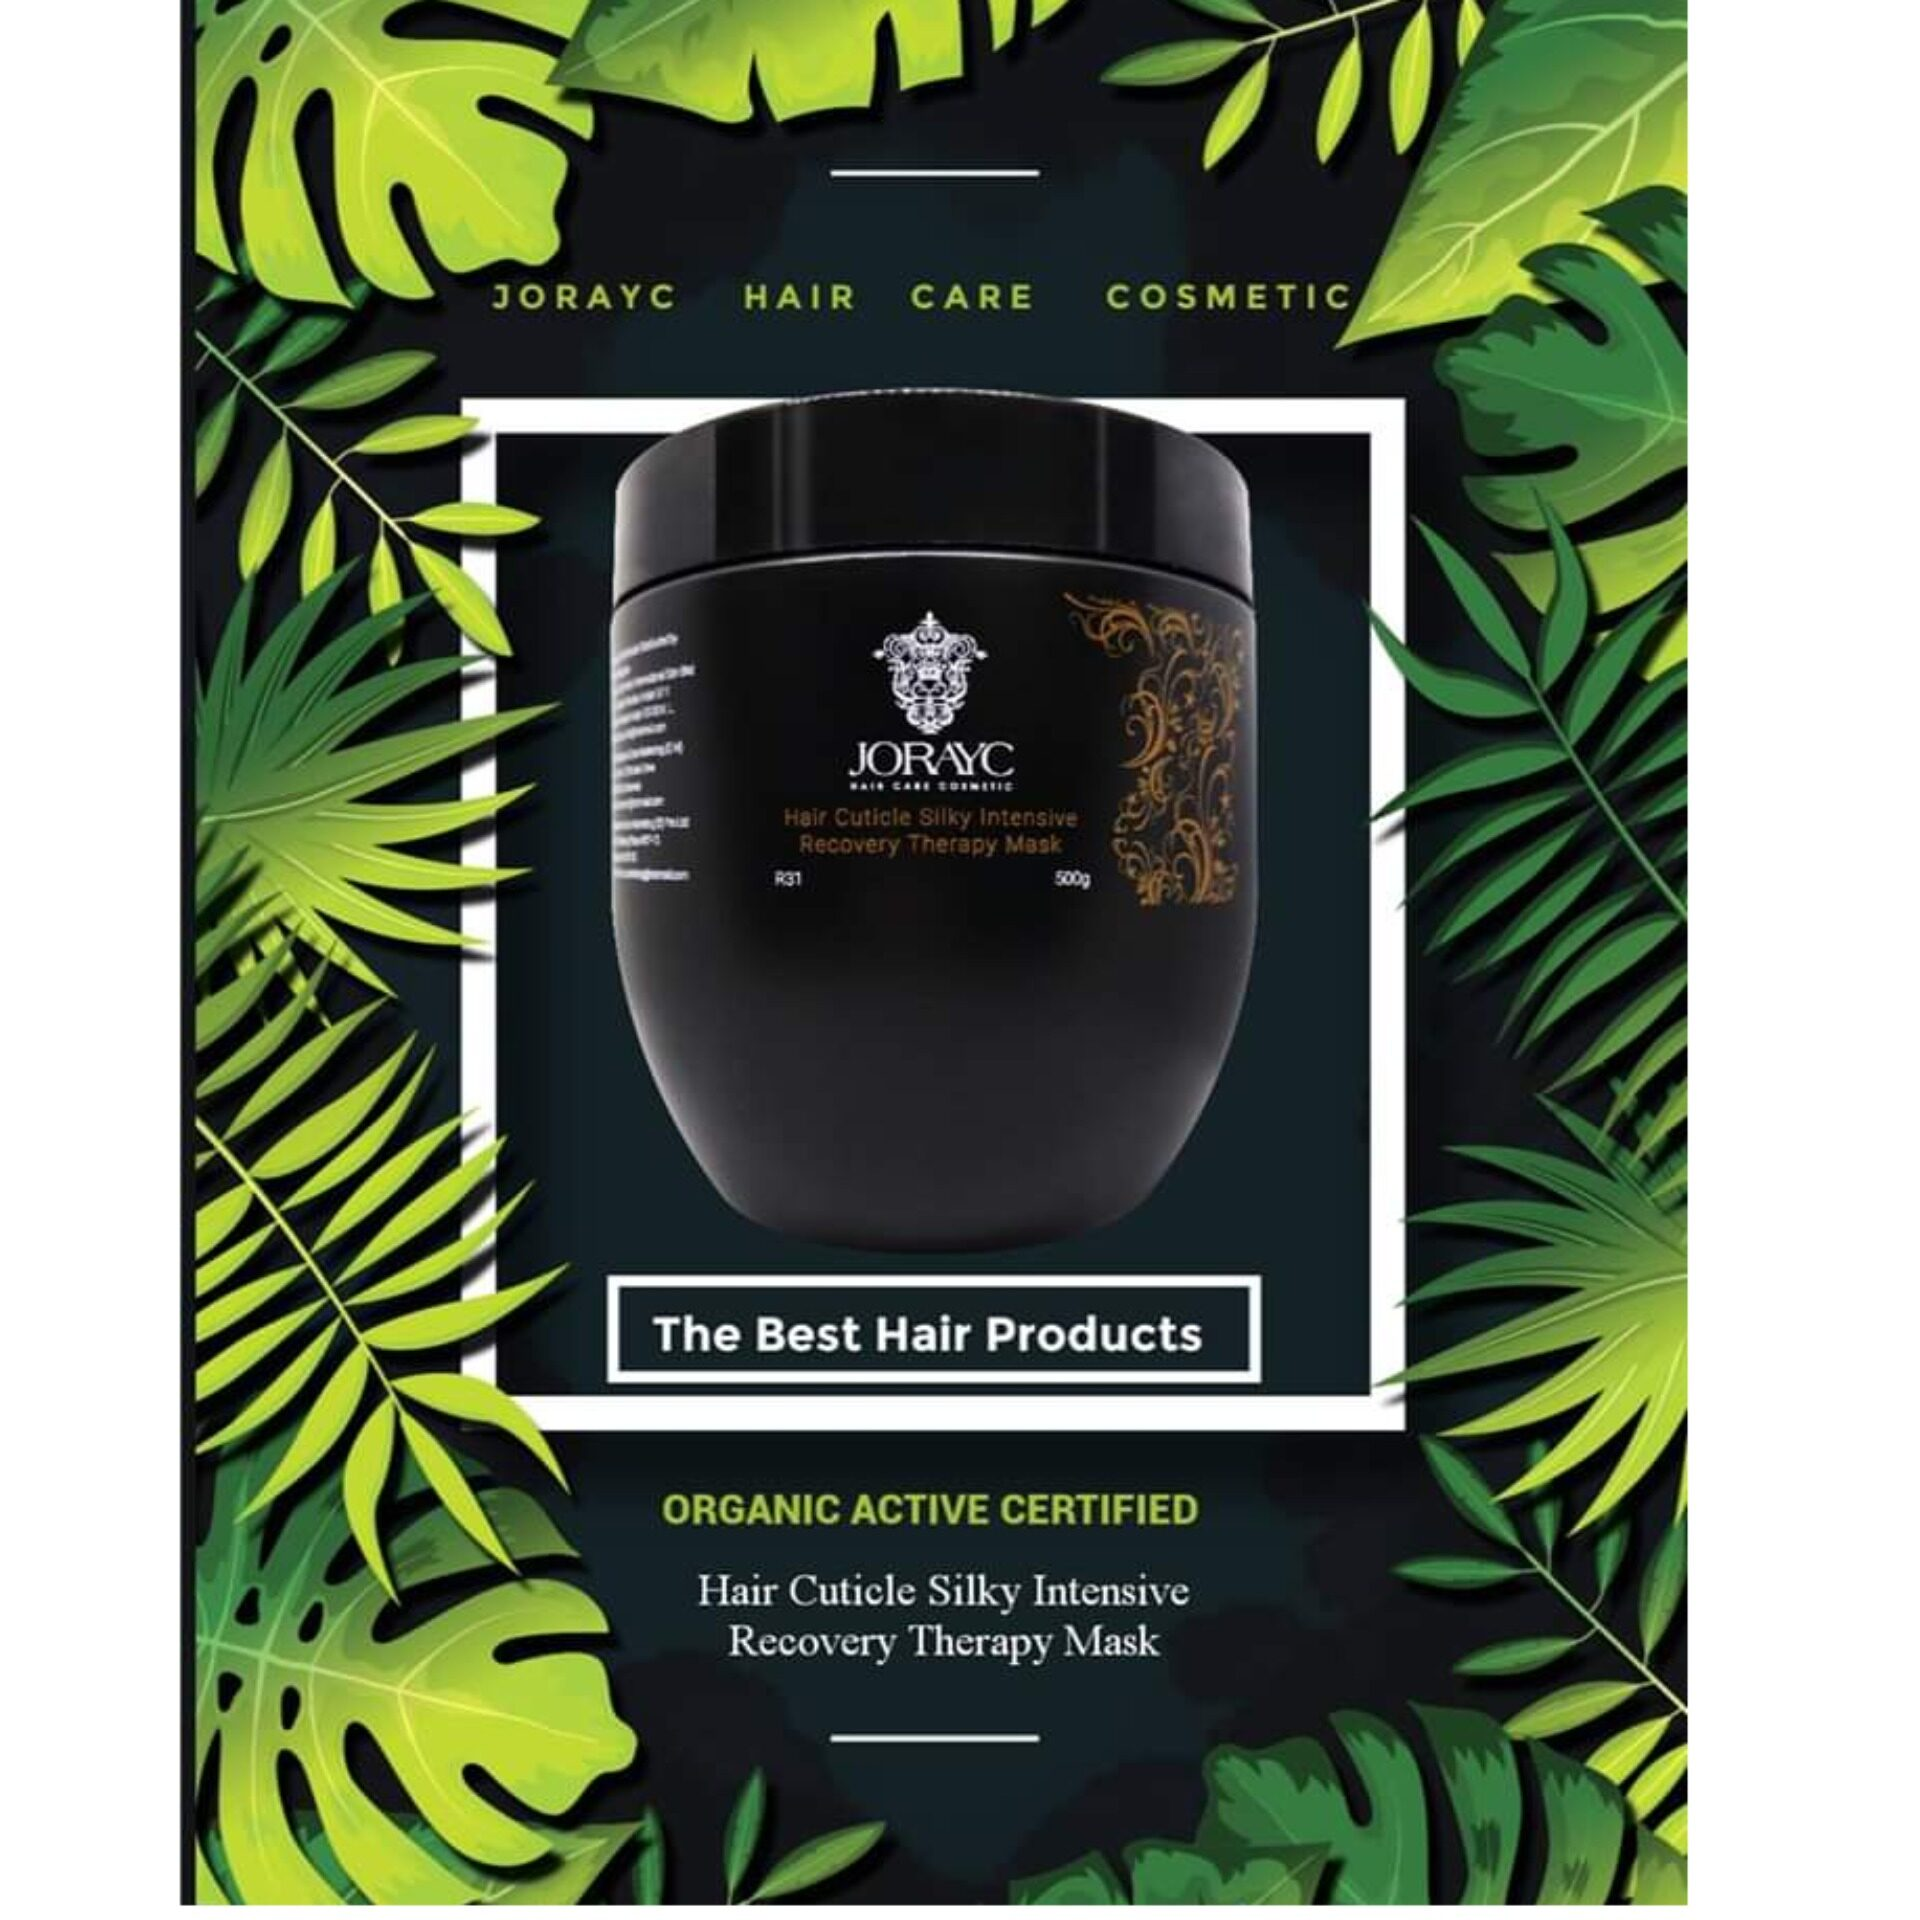 Jorayc Hair Cuticle Silky Intensive Recovery Therapy Mask 500ml